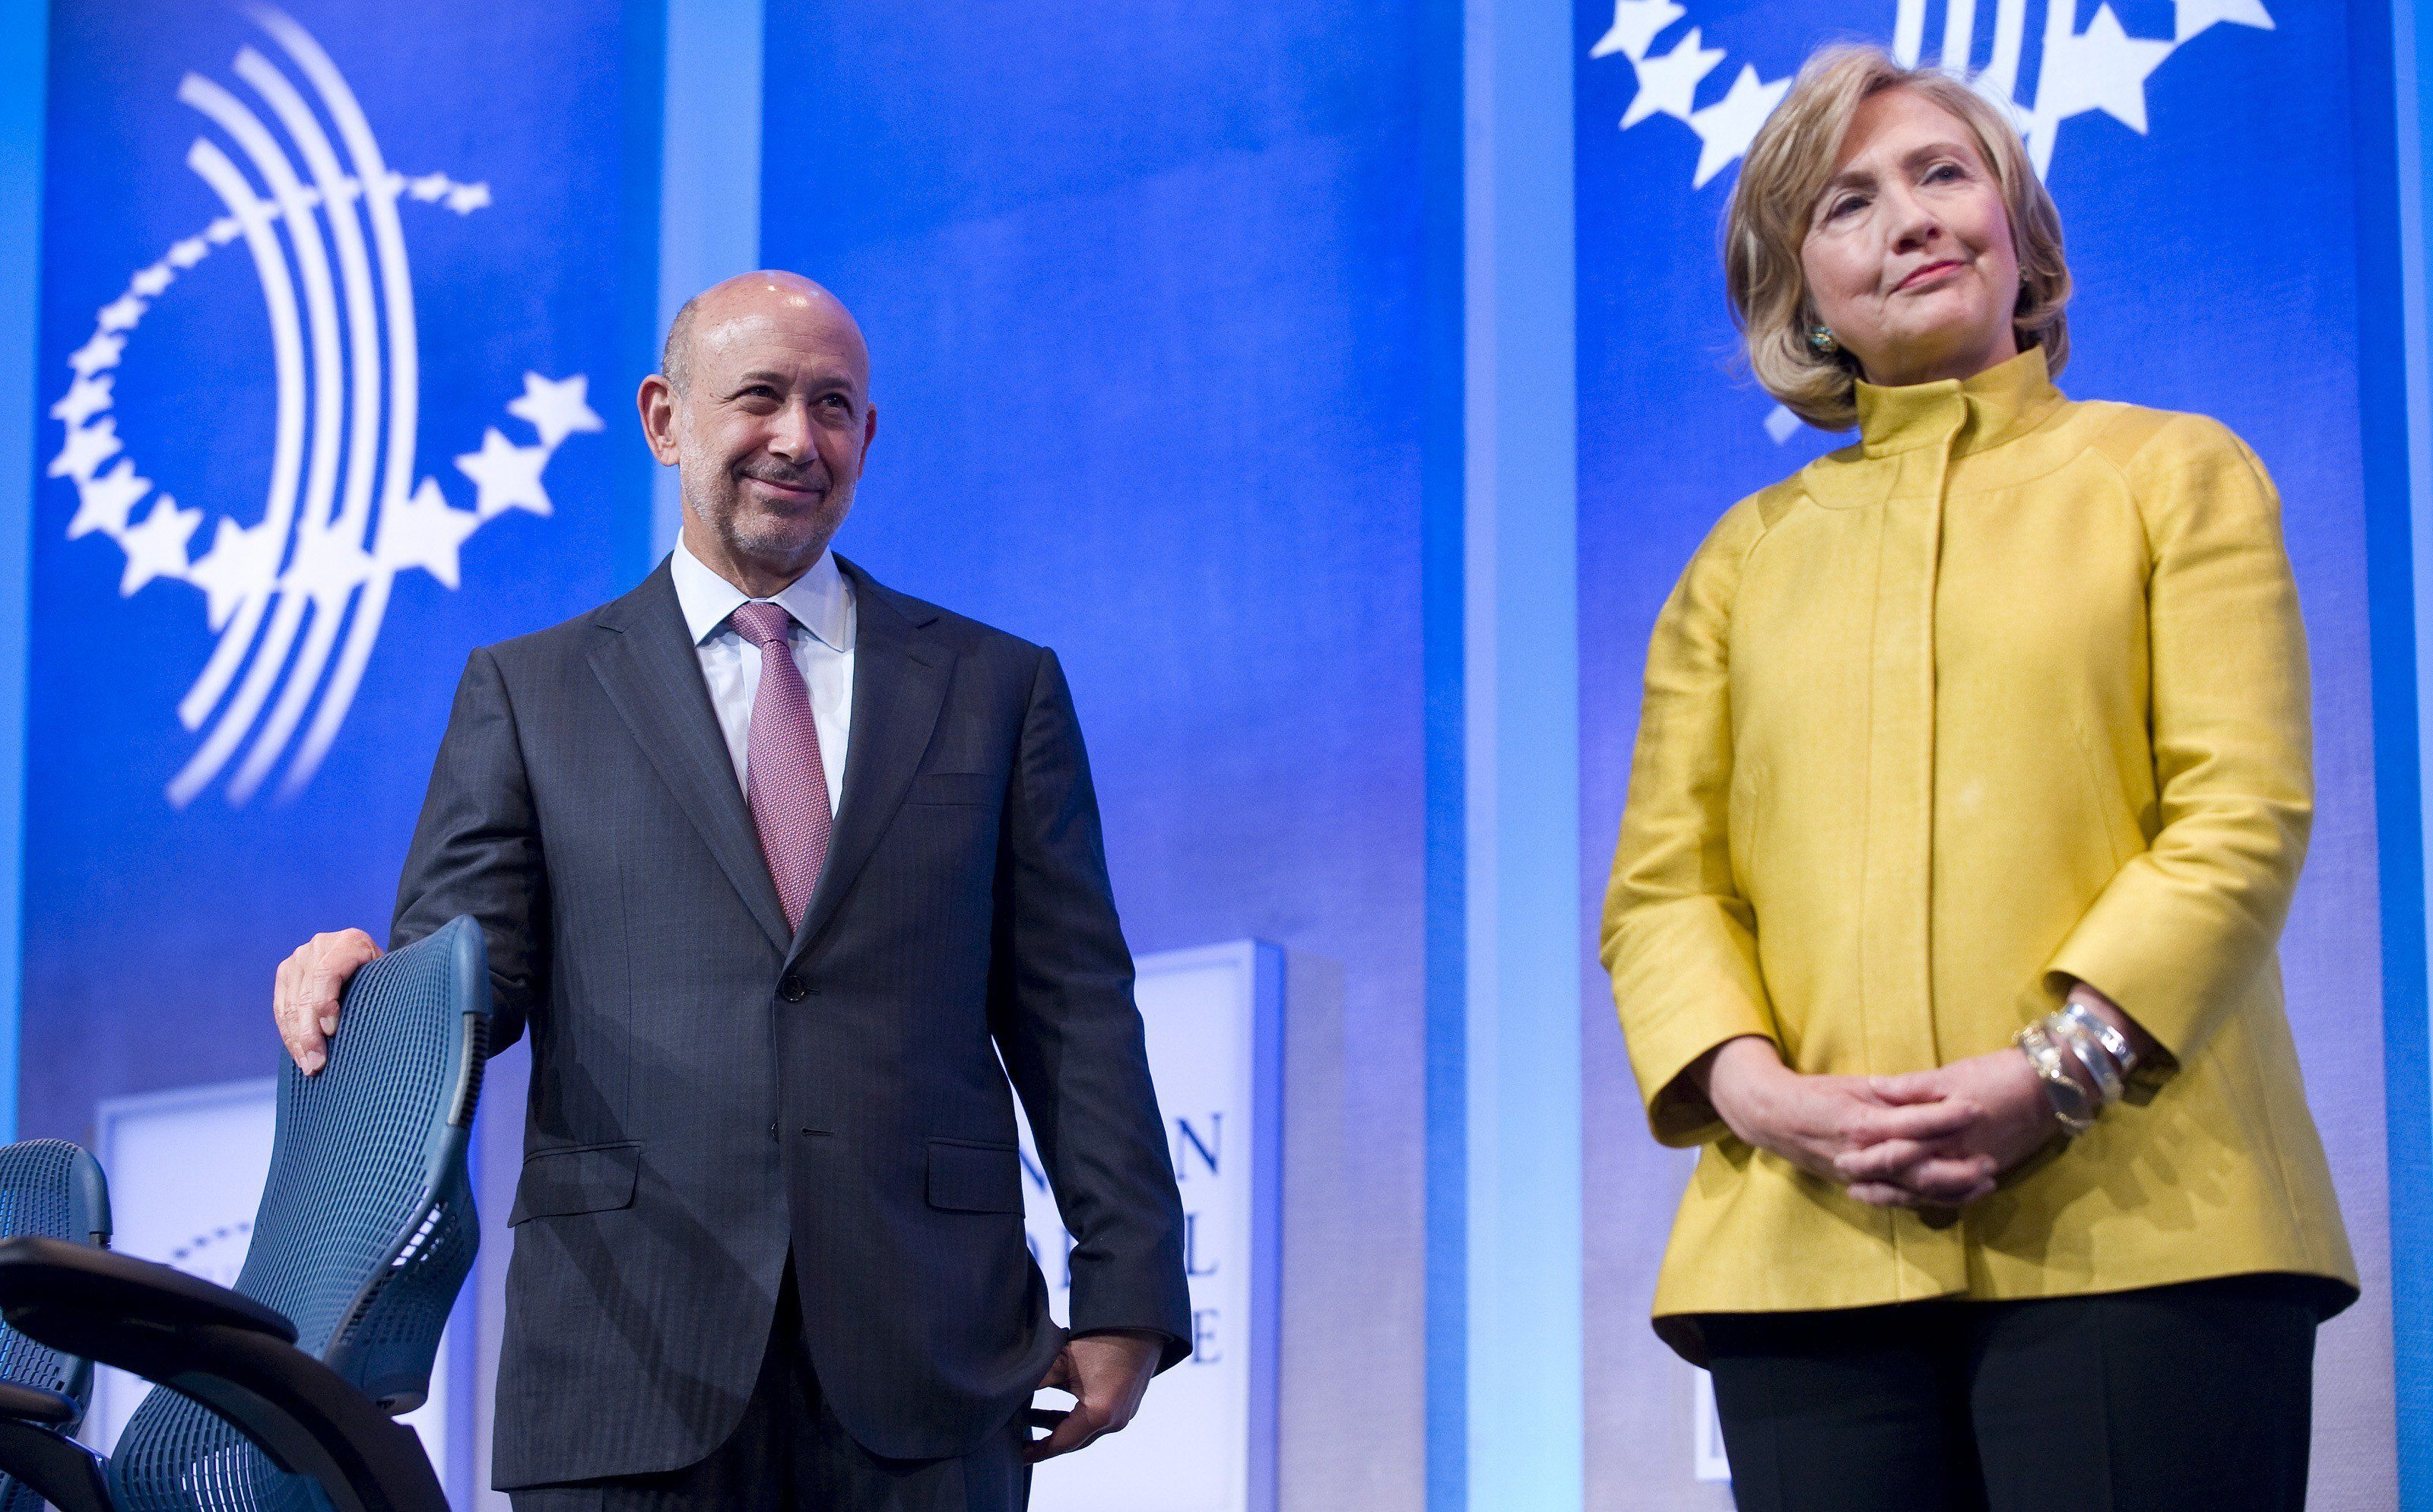 Hillary Clinton stands alongside Lloyd Blankfein, CEO of Goldman Sachs in Sep. 2014. Clinton's ties and paid speeches to